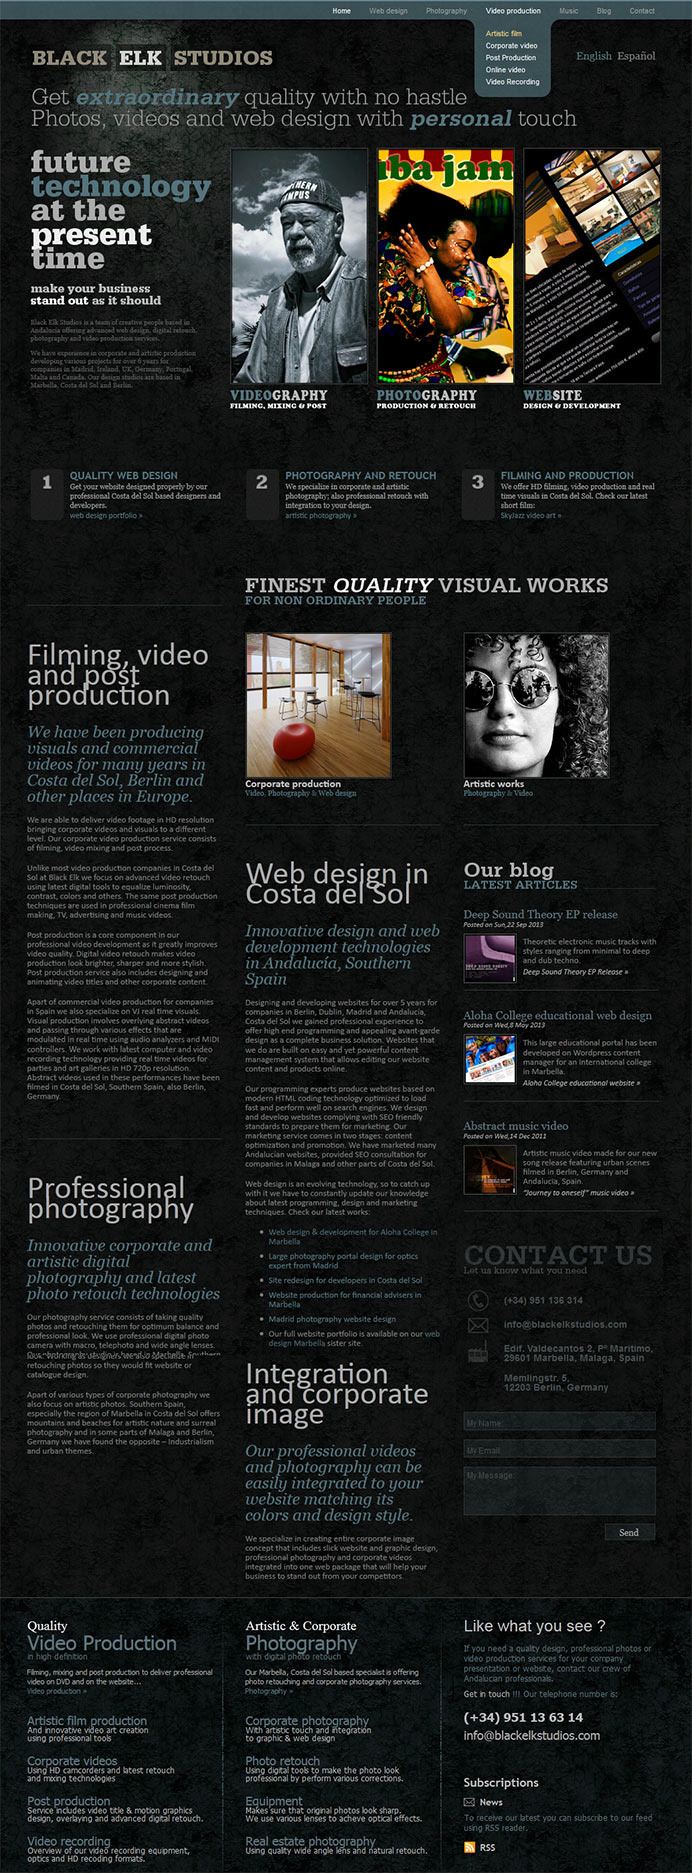 Studio specializes in designing and developing websites, video production and photography in Madird, Marbella and Berlin